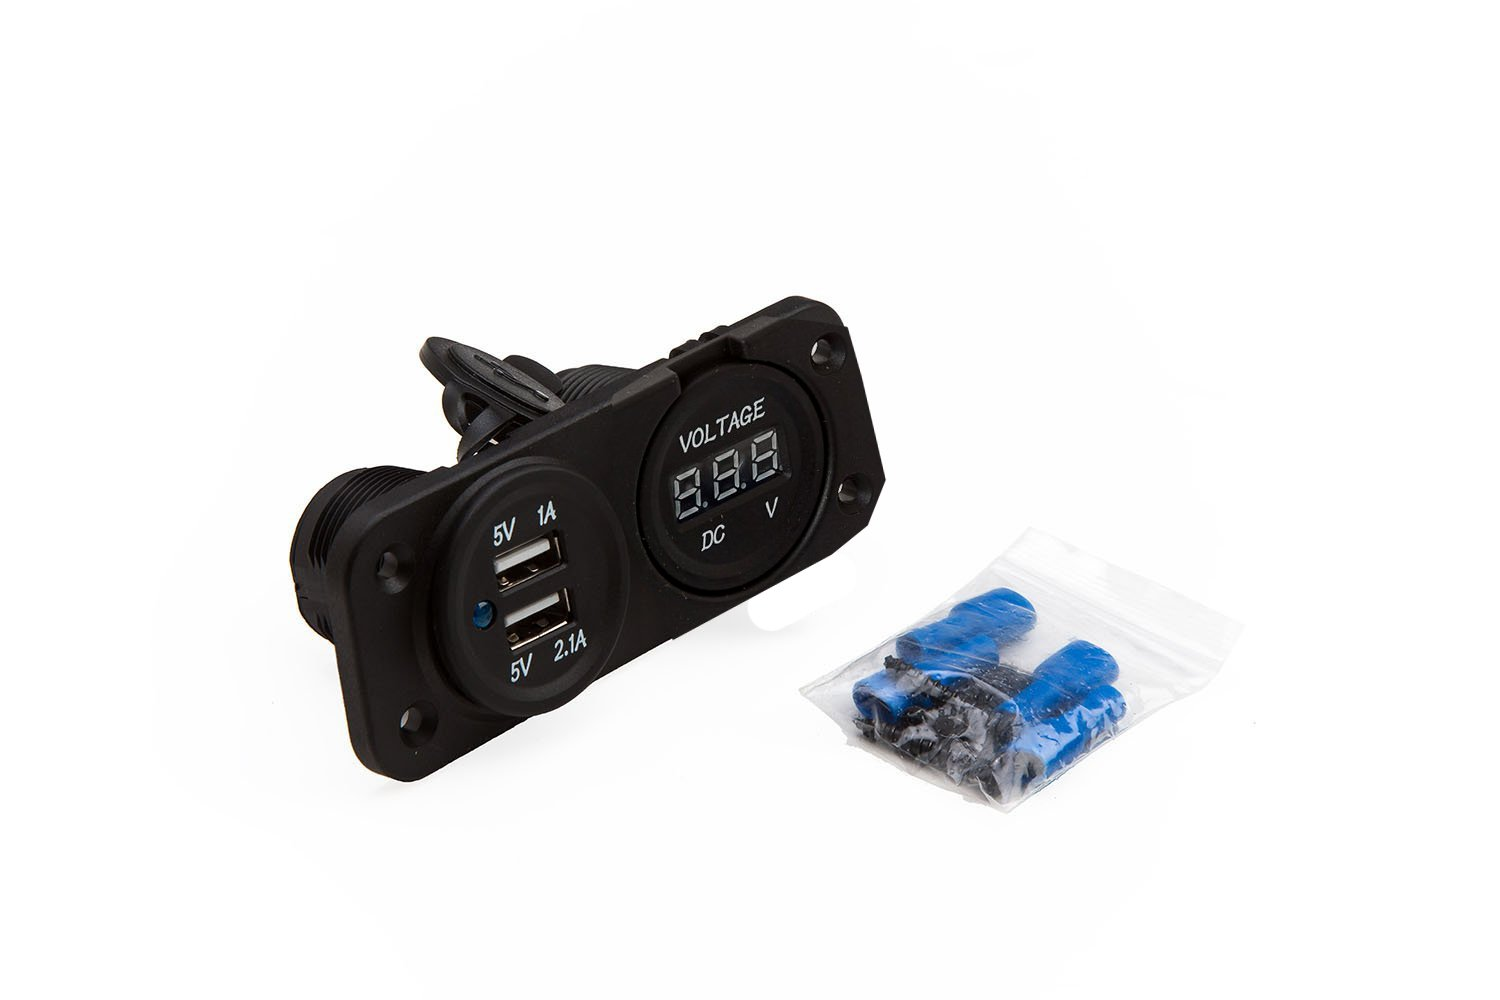 61hl3wqMEqL._SL1500_ amazon com panel dual usb socket and voltmeter for boat rv  at fashall.co